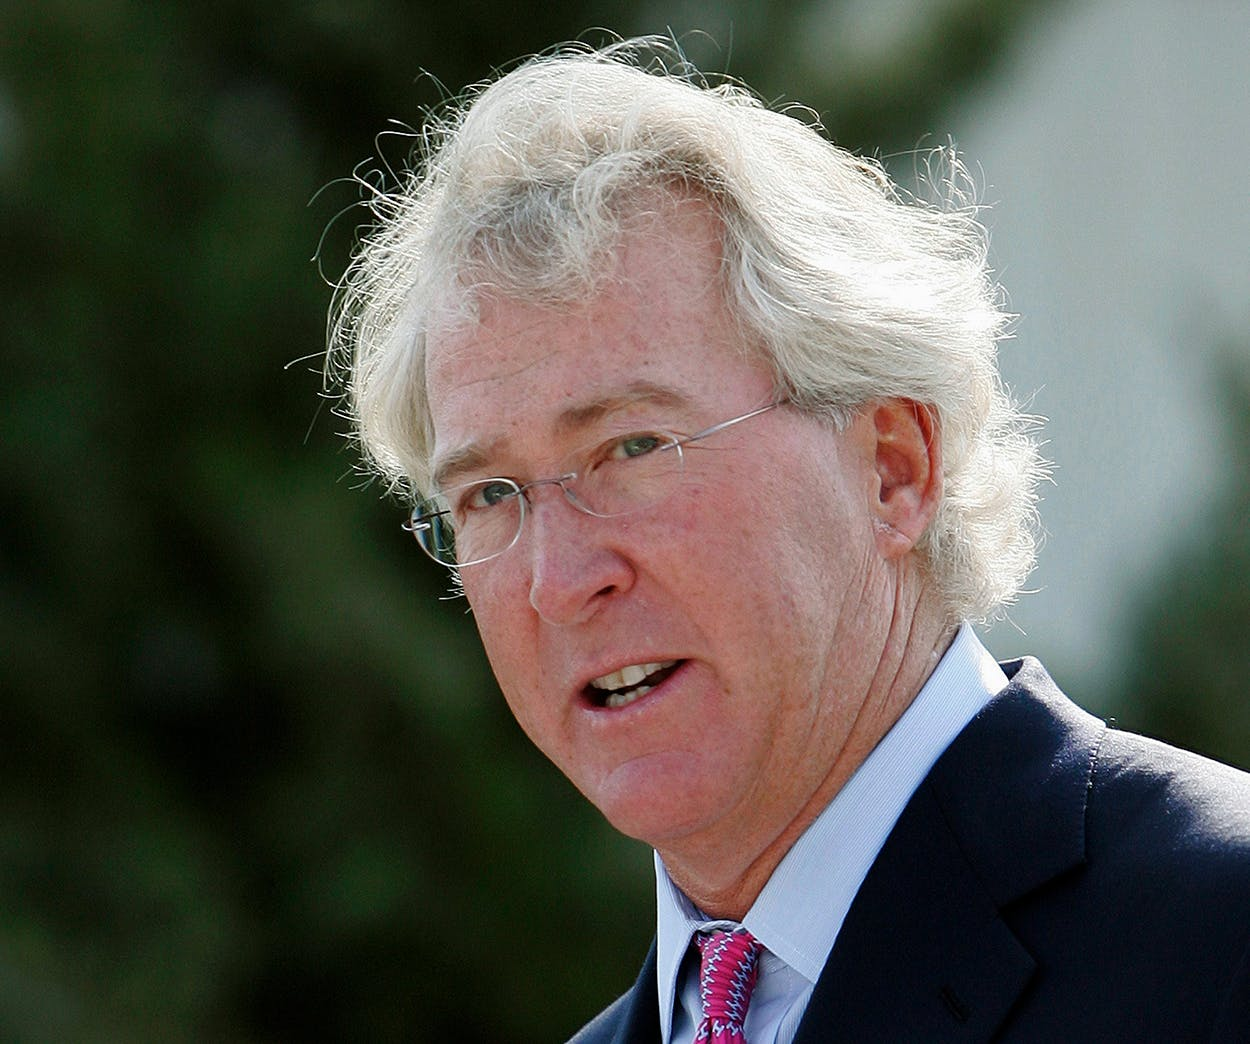 In a Sept. 8, 2009, file photo, Chesapeake Energy Corp. CEO Aubrey McClendon speaks during the opening of a compressed natural gas filling station in Oklahoma City.